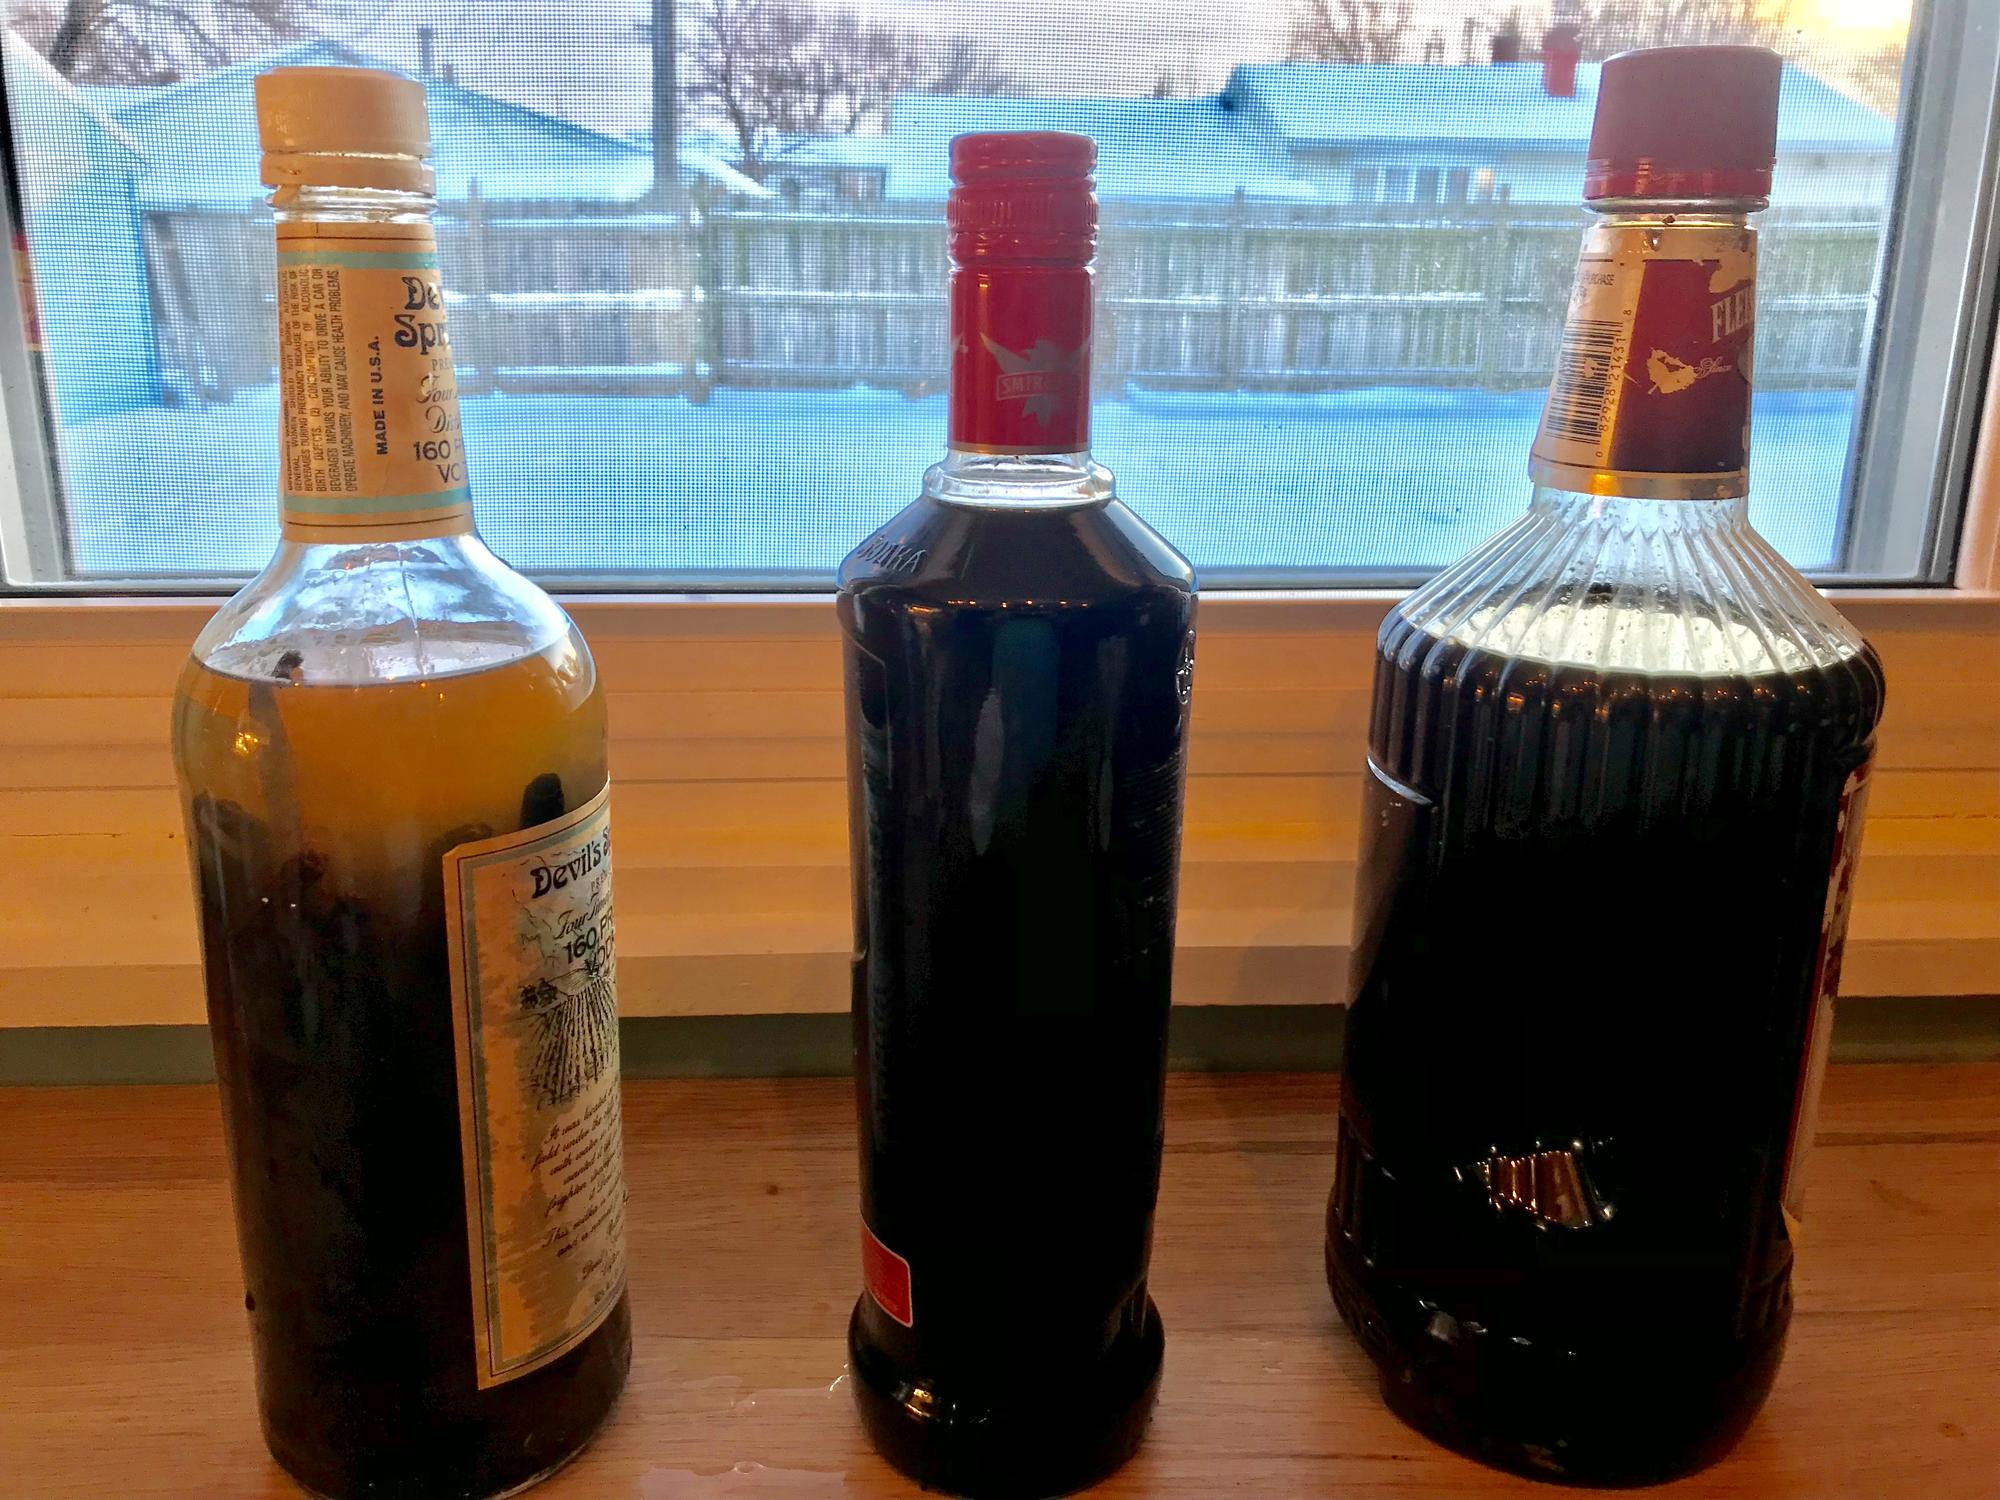 Post in The make-your-own vanilla extract experiment